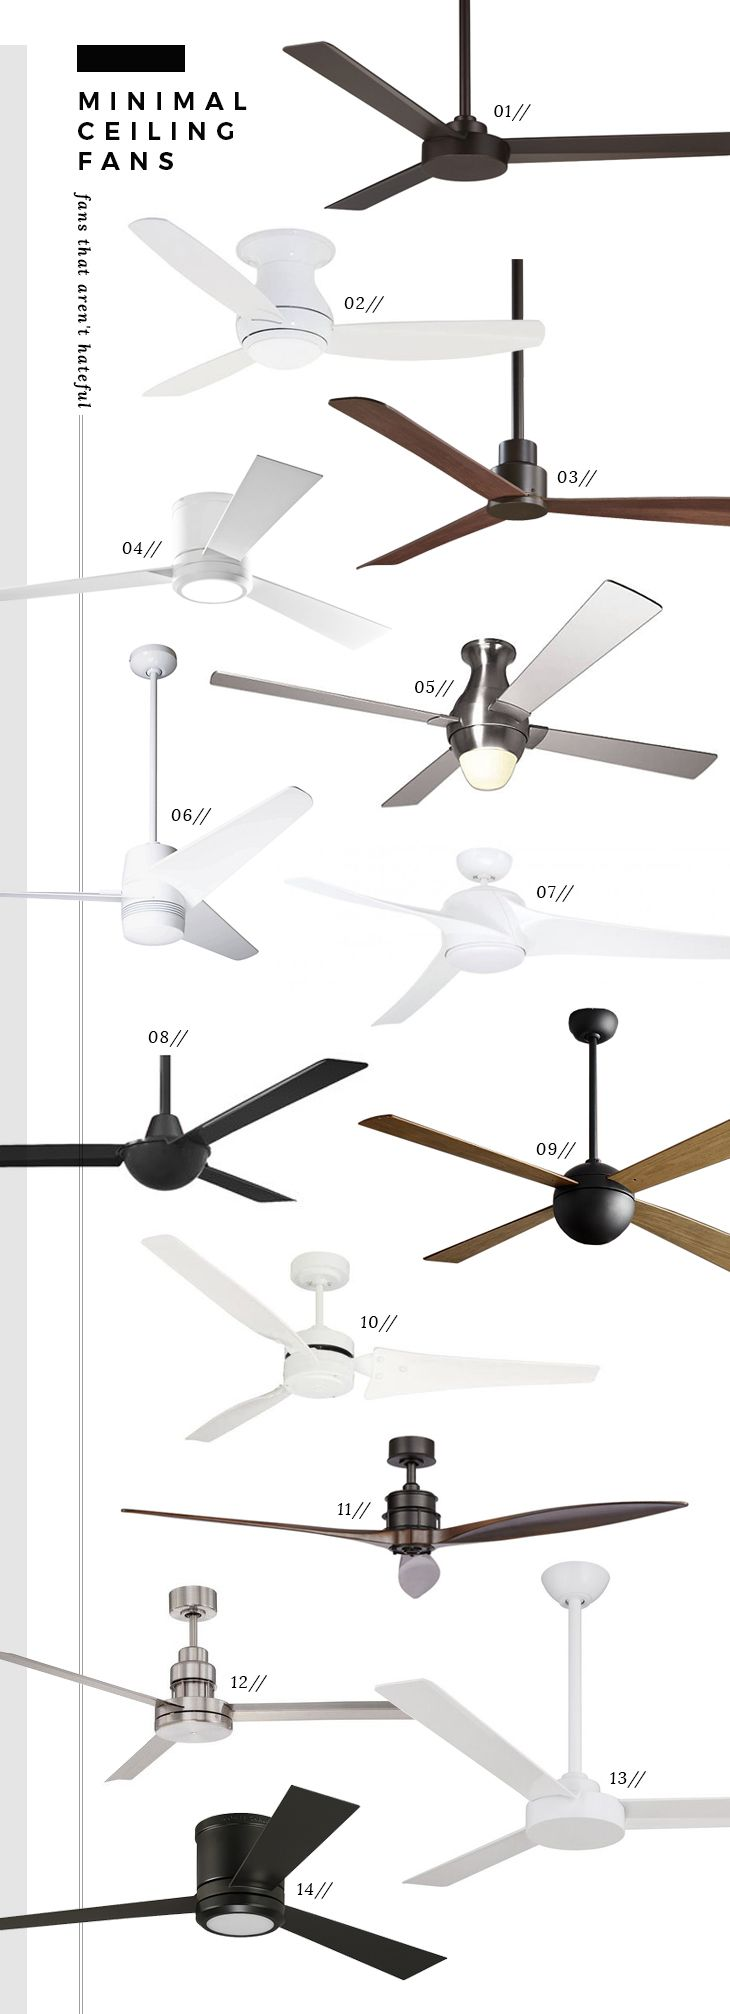 The Best Modern Minimal Ceiling Fans